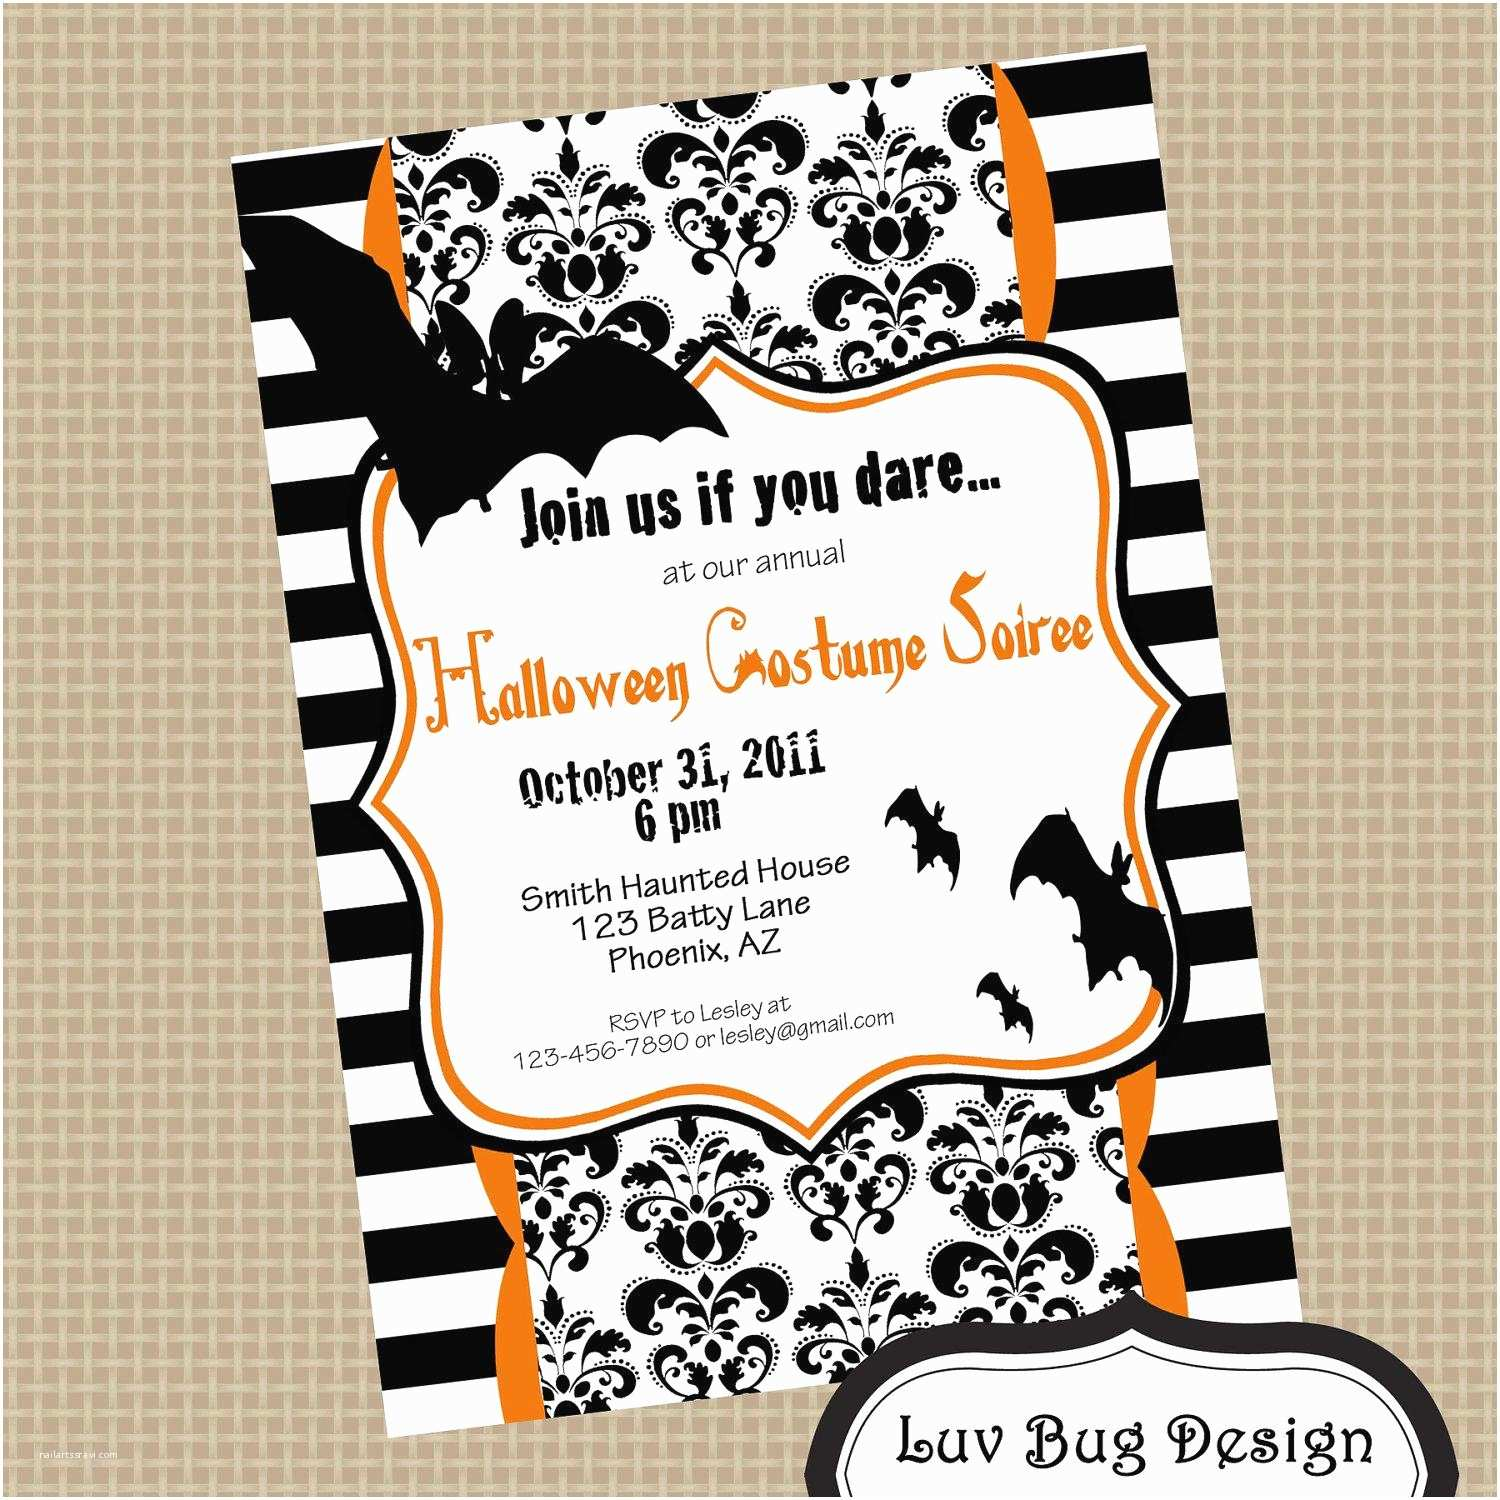 Halloween Costume Party Invitations Costume Party Invitations